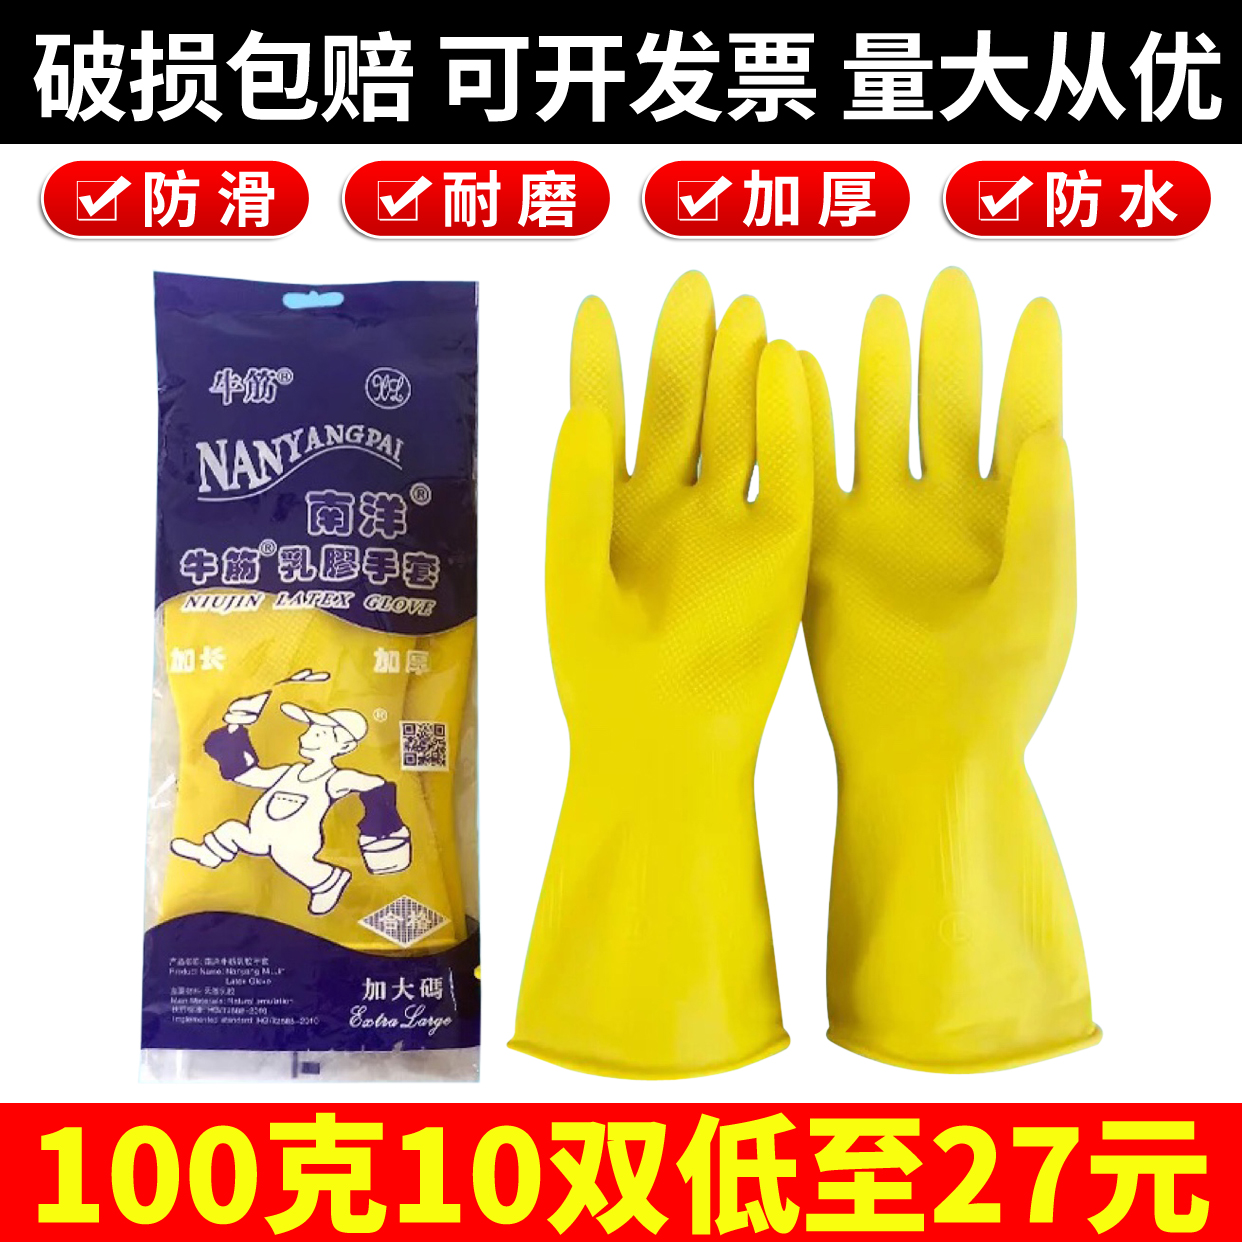 100g genuine Nanyang brand cattle tendon latex gloves thickened durable rubber / dishwashing gloves home waterproof package